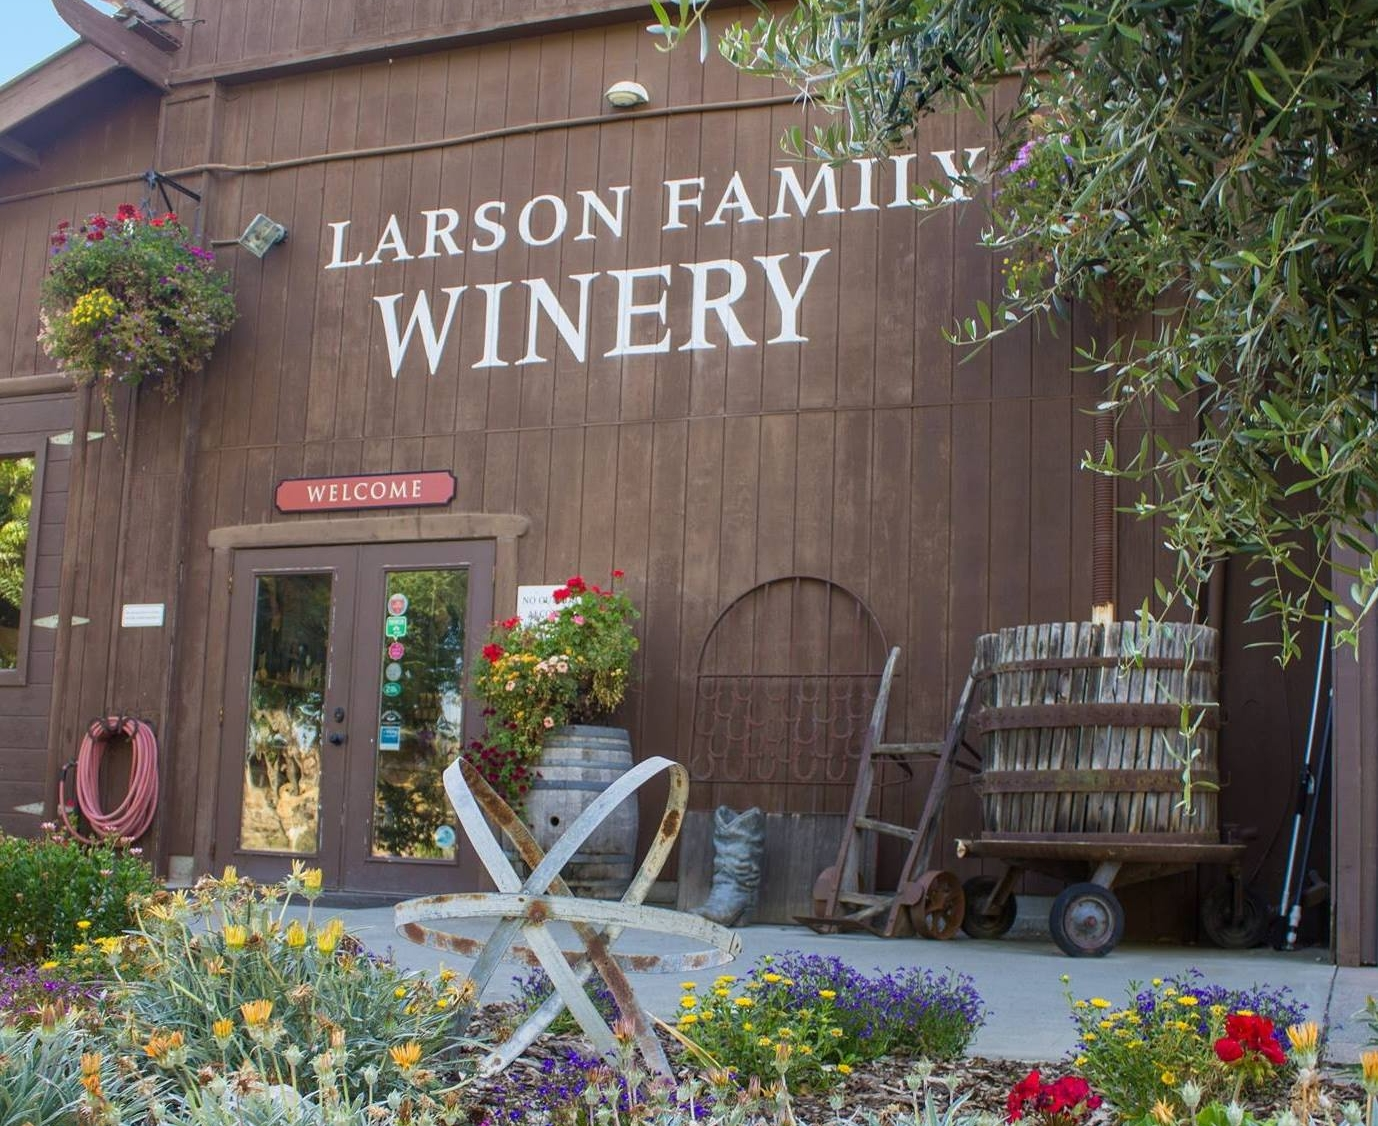 Photo credit: Larson Family Winery